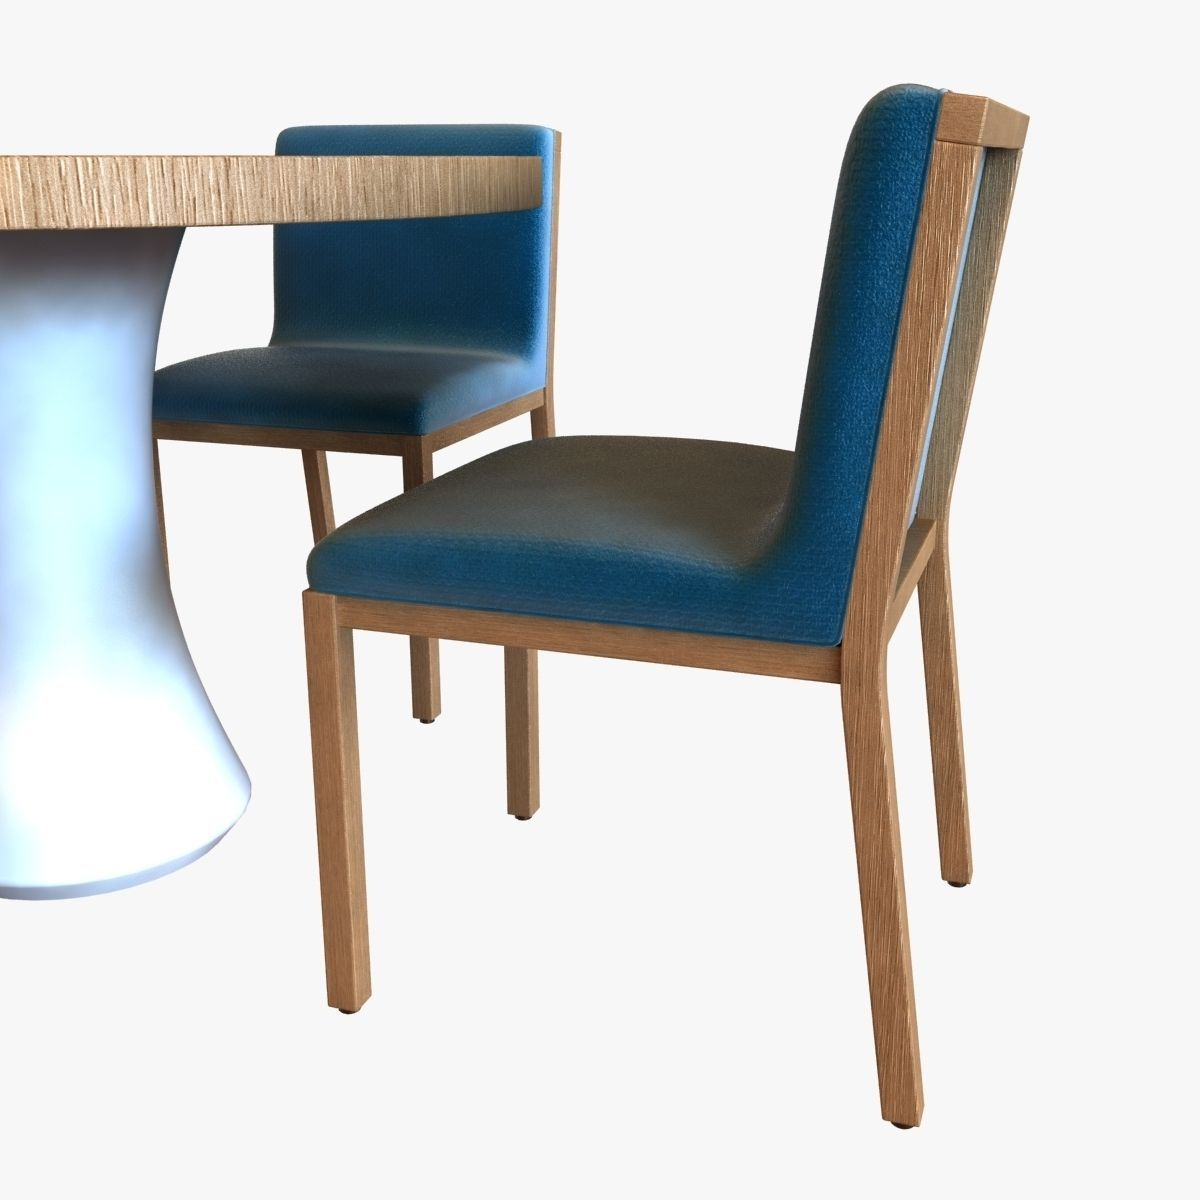 Table Chair And Ceiling Fan 3d Model Max Obj 3ds Fbx